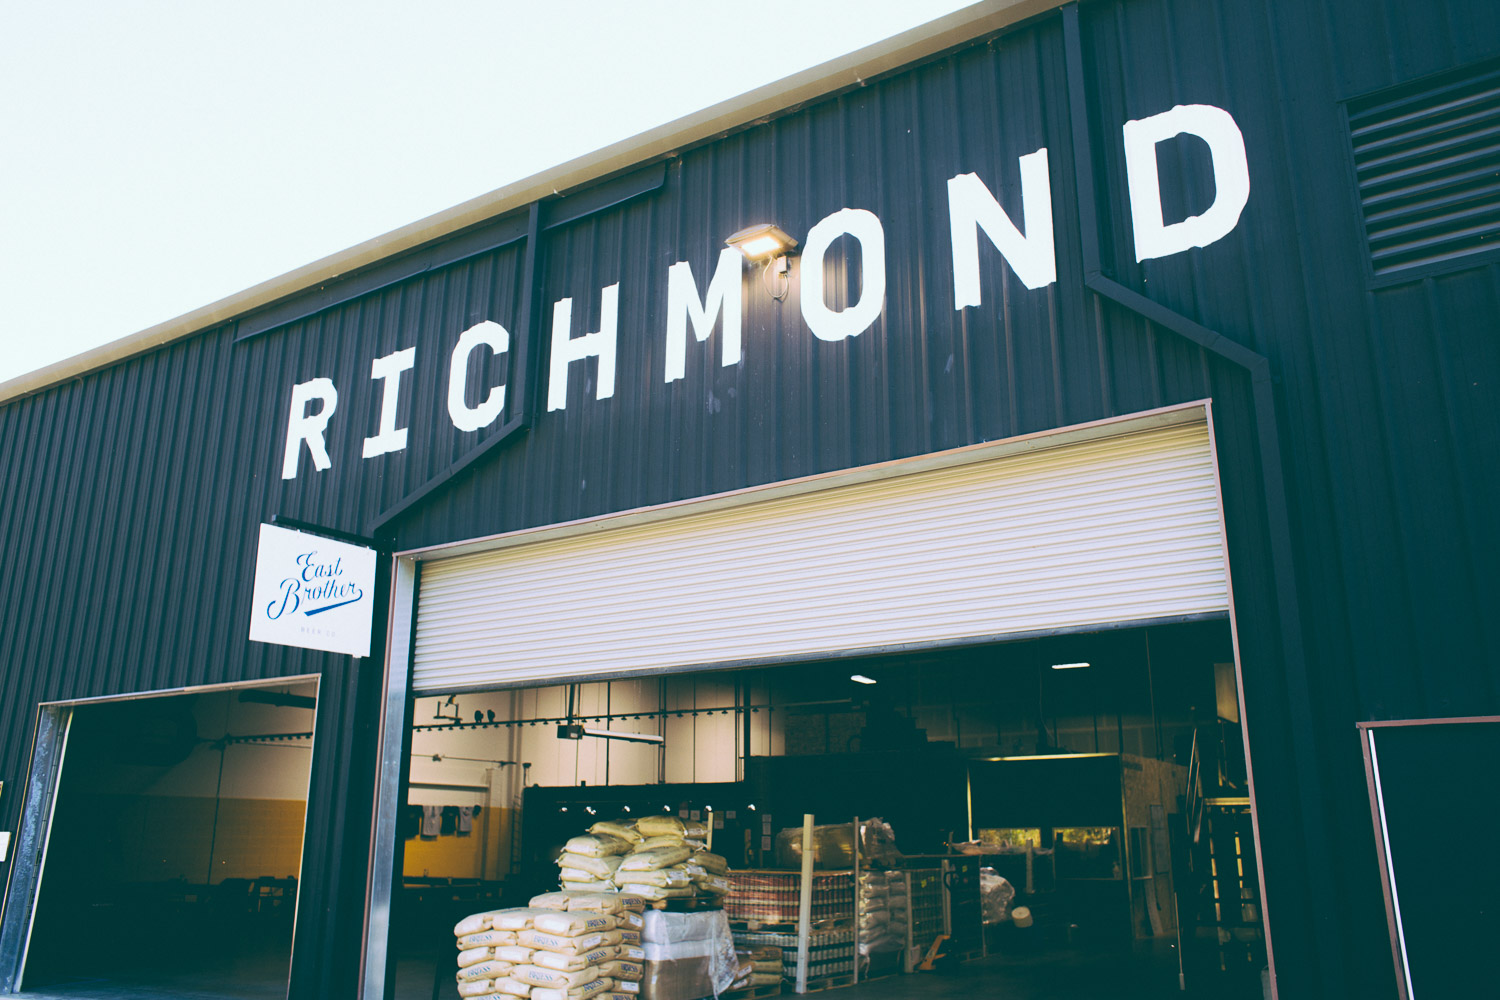 Digging our new home in Richmond